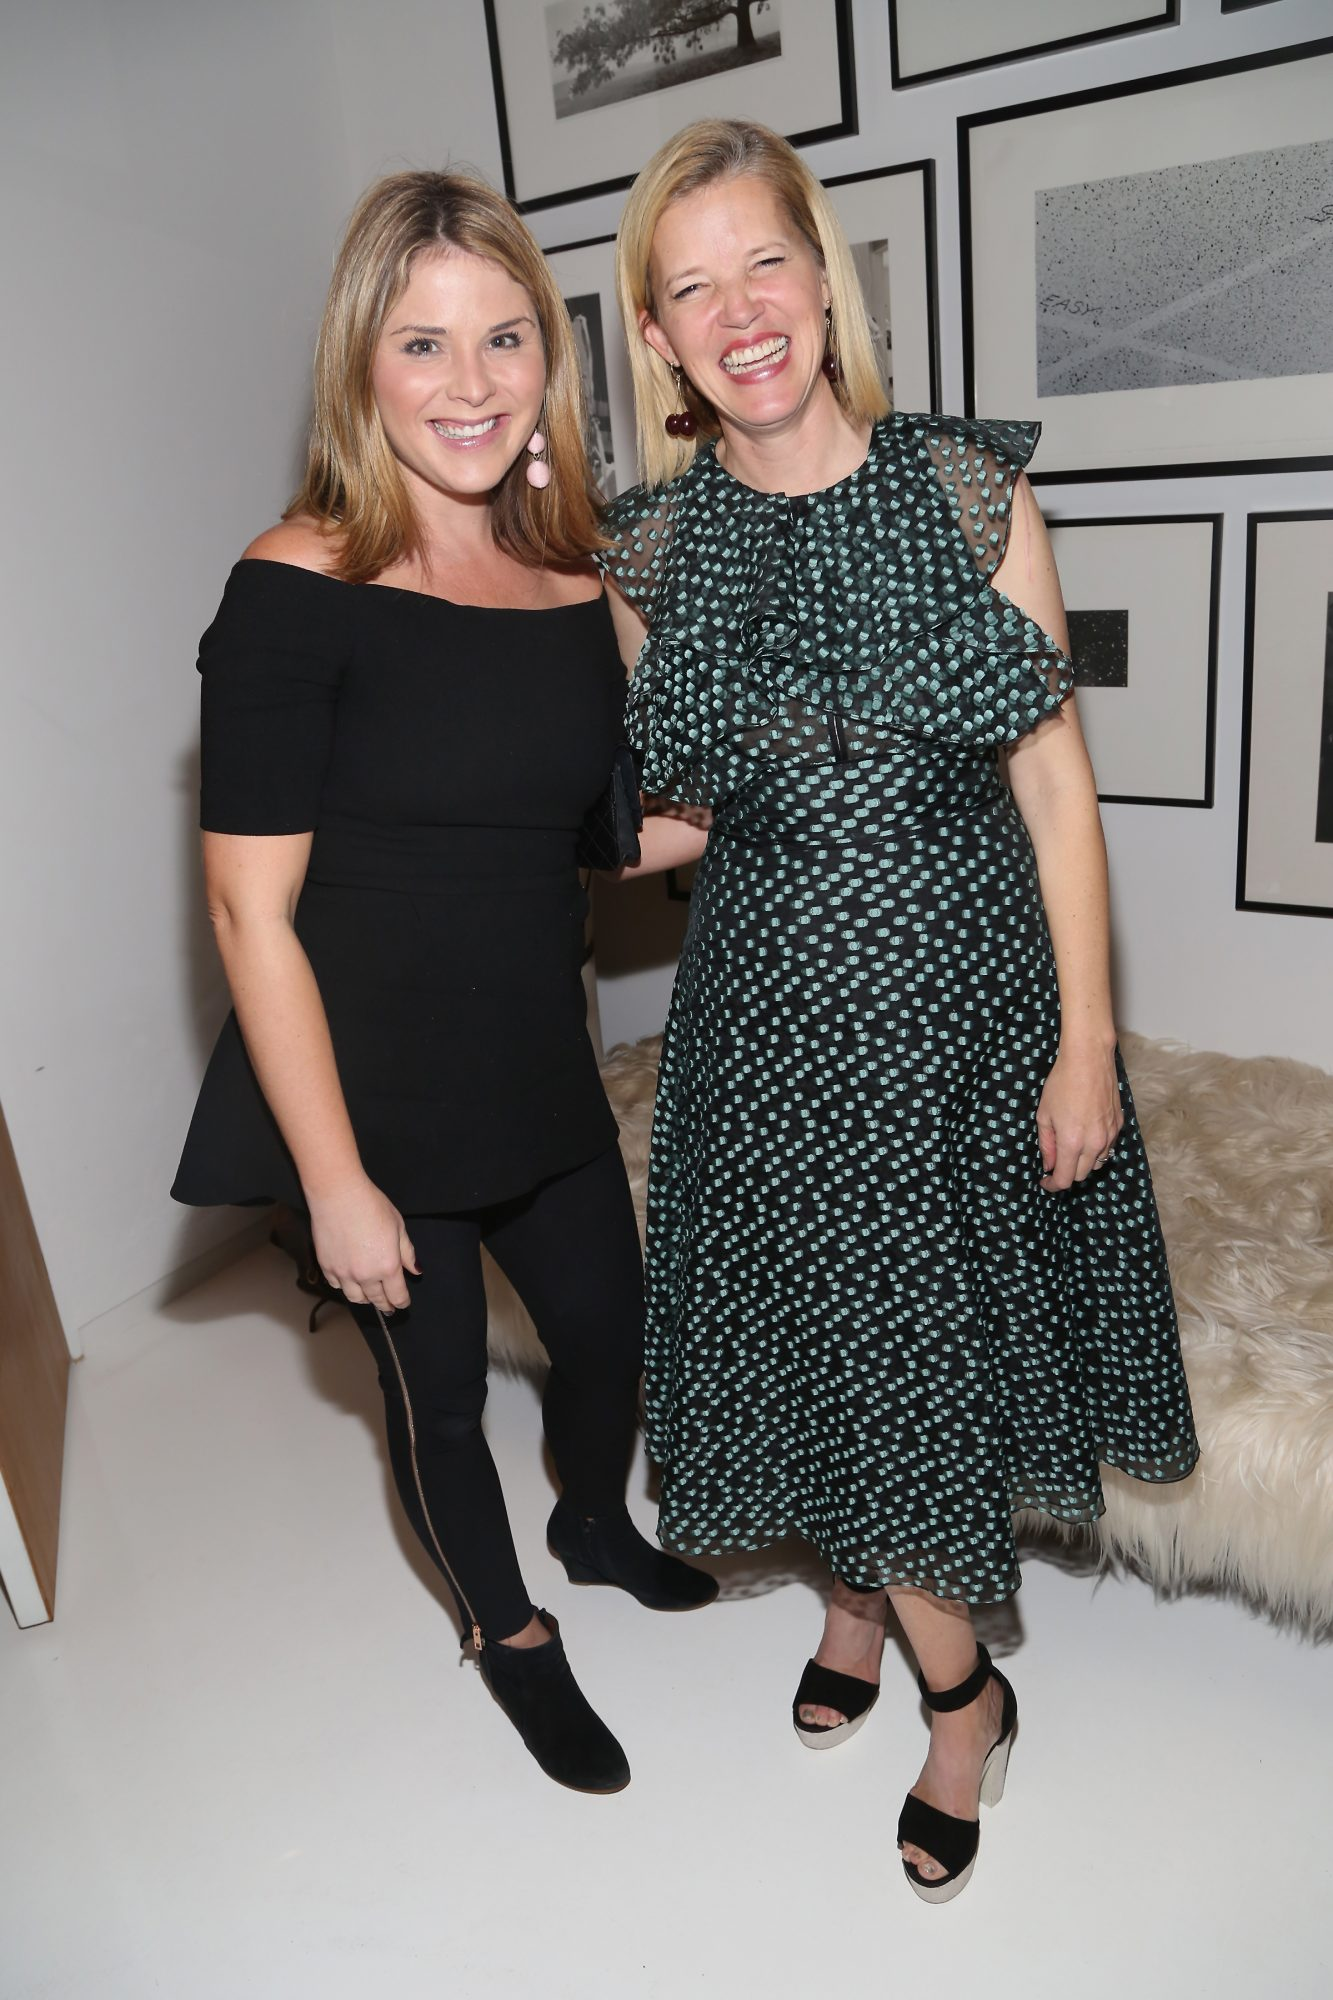 Lela Rose and Jenna Bush Hager